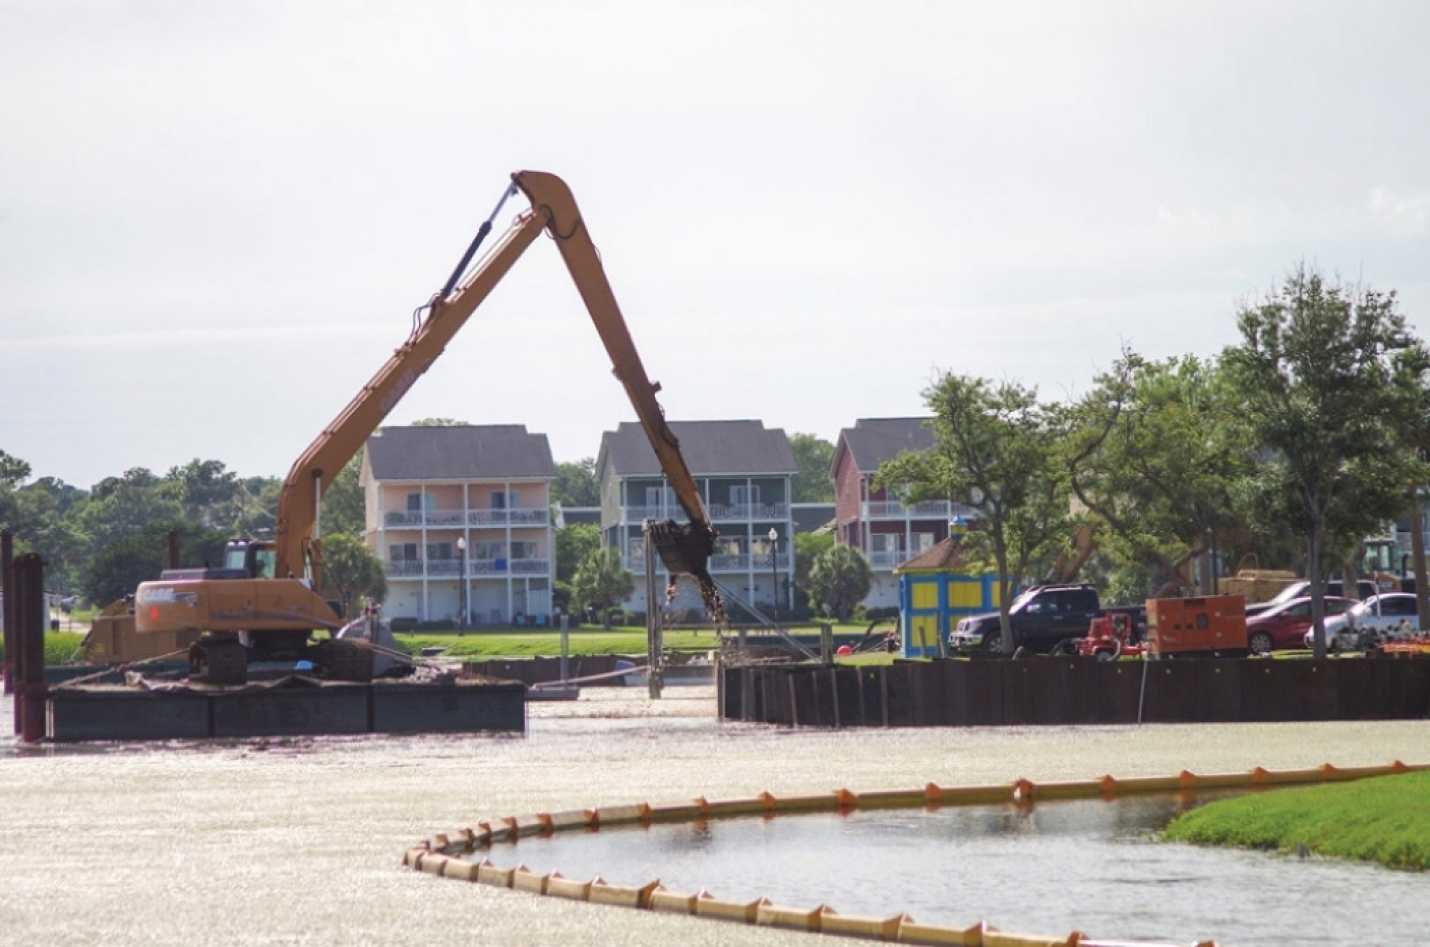 A $2.7 million dollar project to dredge the Carolina Beach Lake to hold additional storm water runoff began in 2017. On August 29th, the U.S. Army demanded the Town stop hauling dirt to land leased to the Town since the 1970's for a wastewater treatment plant off Dow Road.  The Town was placing the dirt at an unapproved location on the property. Now the Town is searching for alternate locations. (Photo: Summer of 2017).